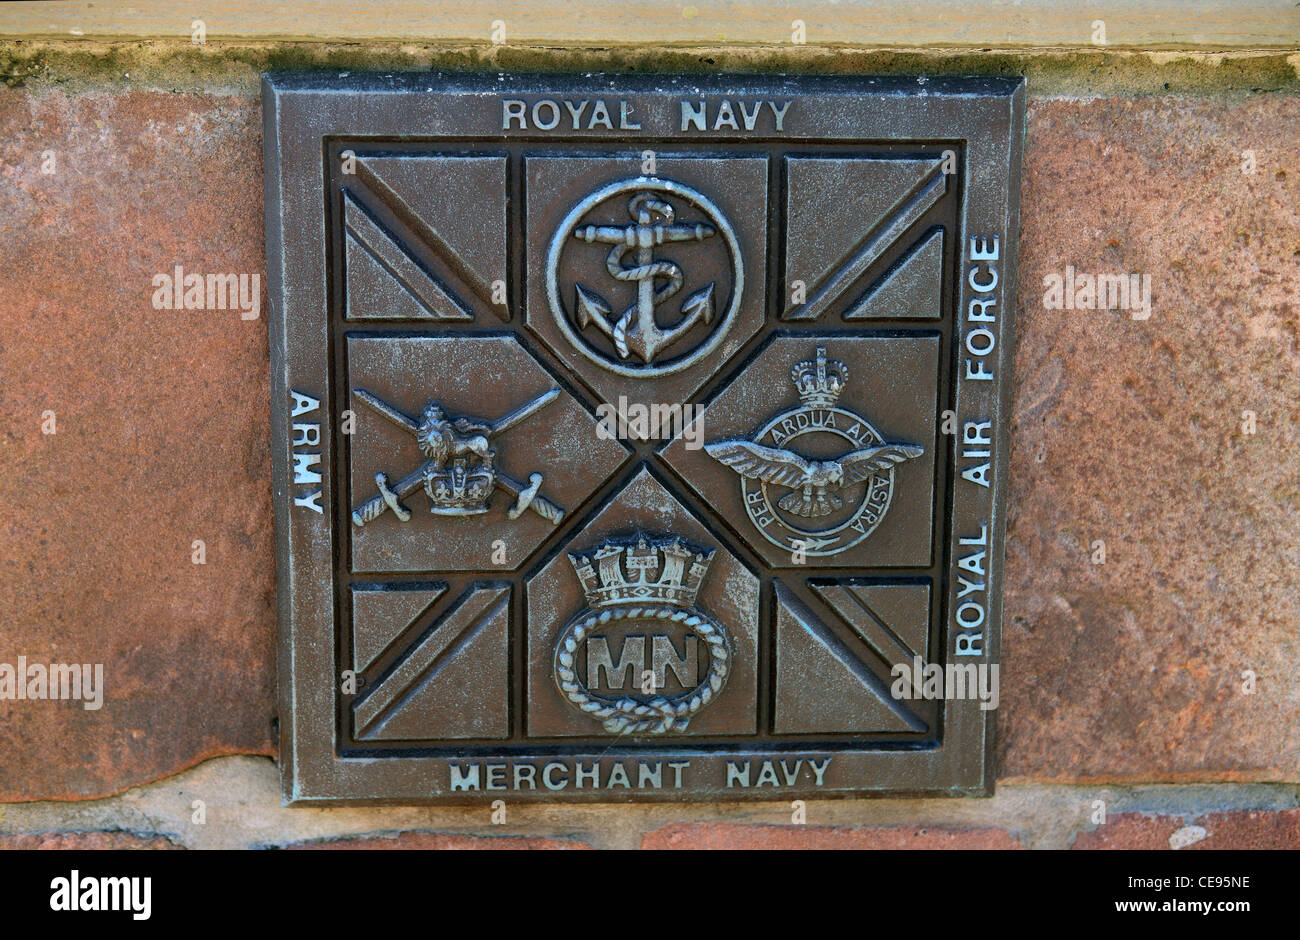 Plaque depicting the UK forces, Army, Royal Navy, Royal Air Force and the Merchant Navy - Stock Image